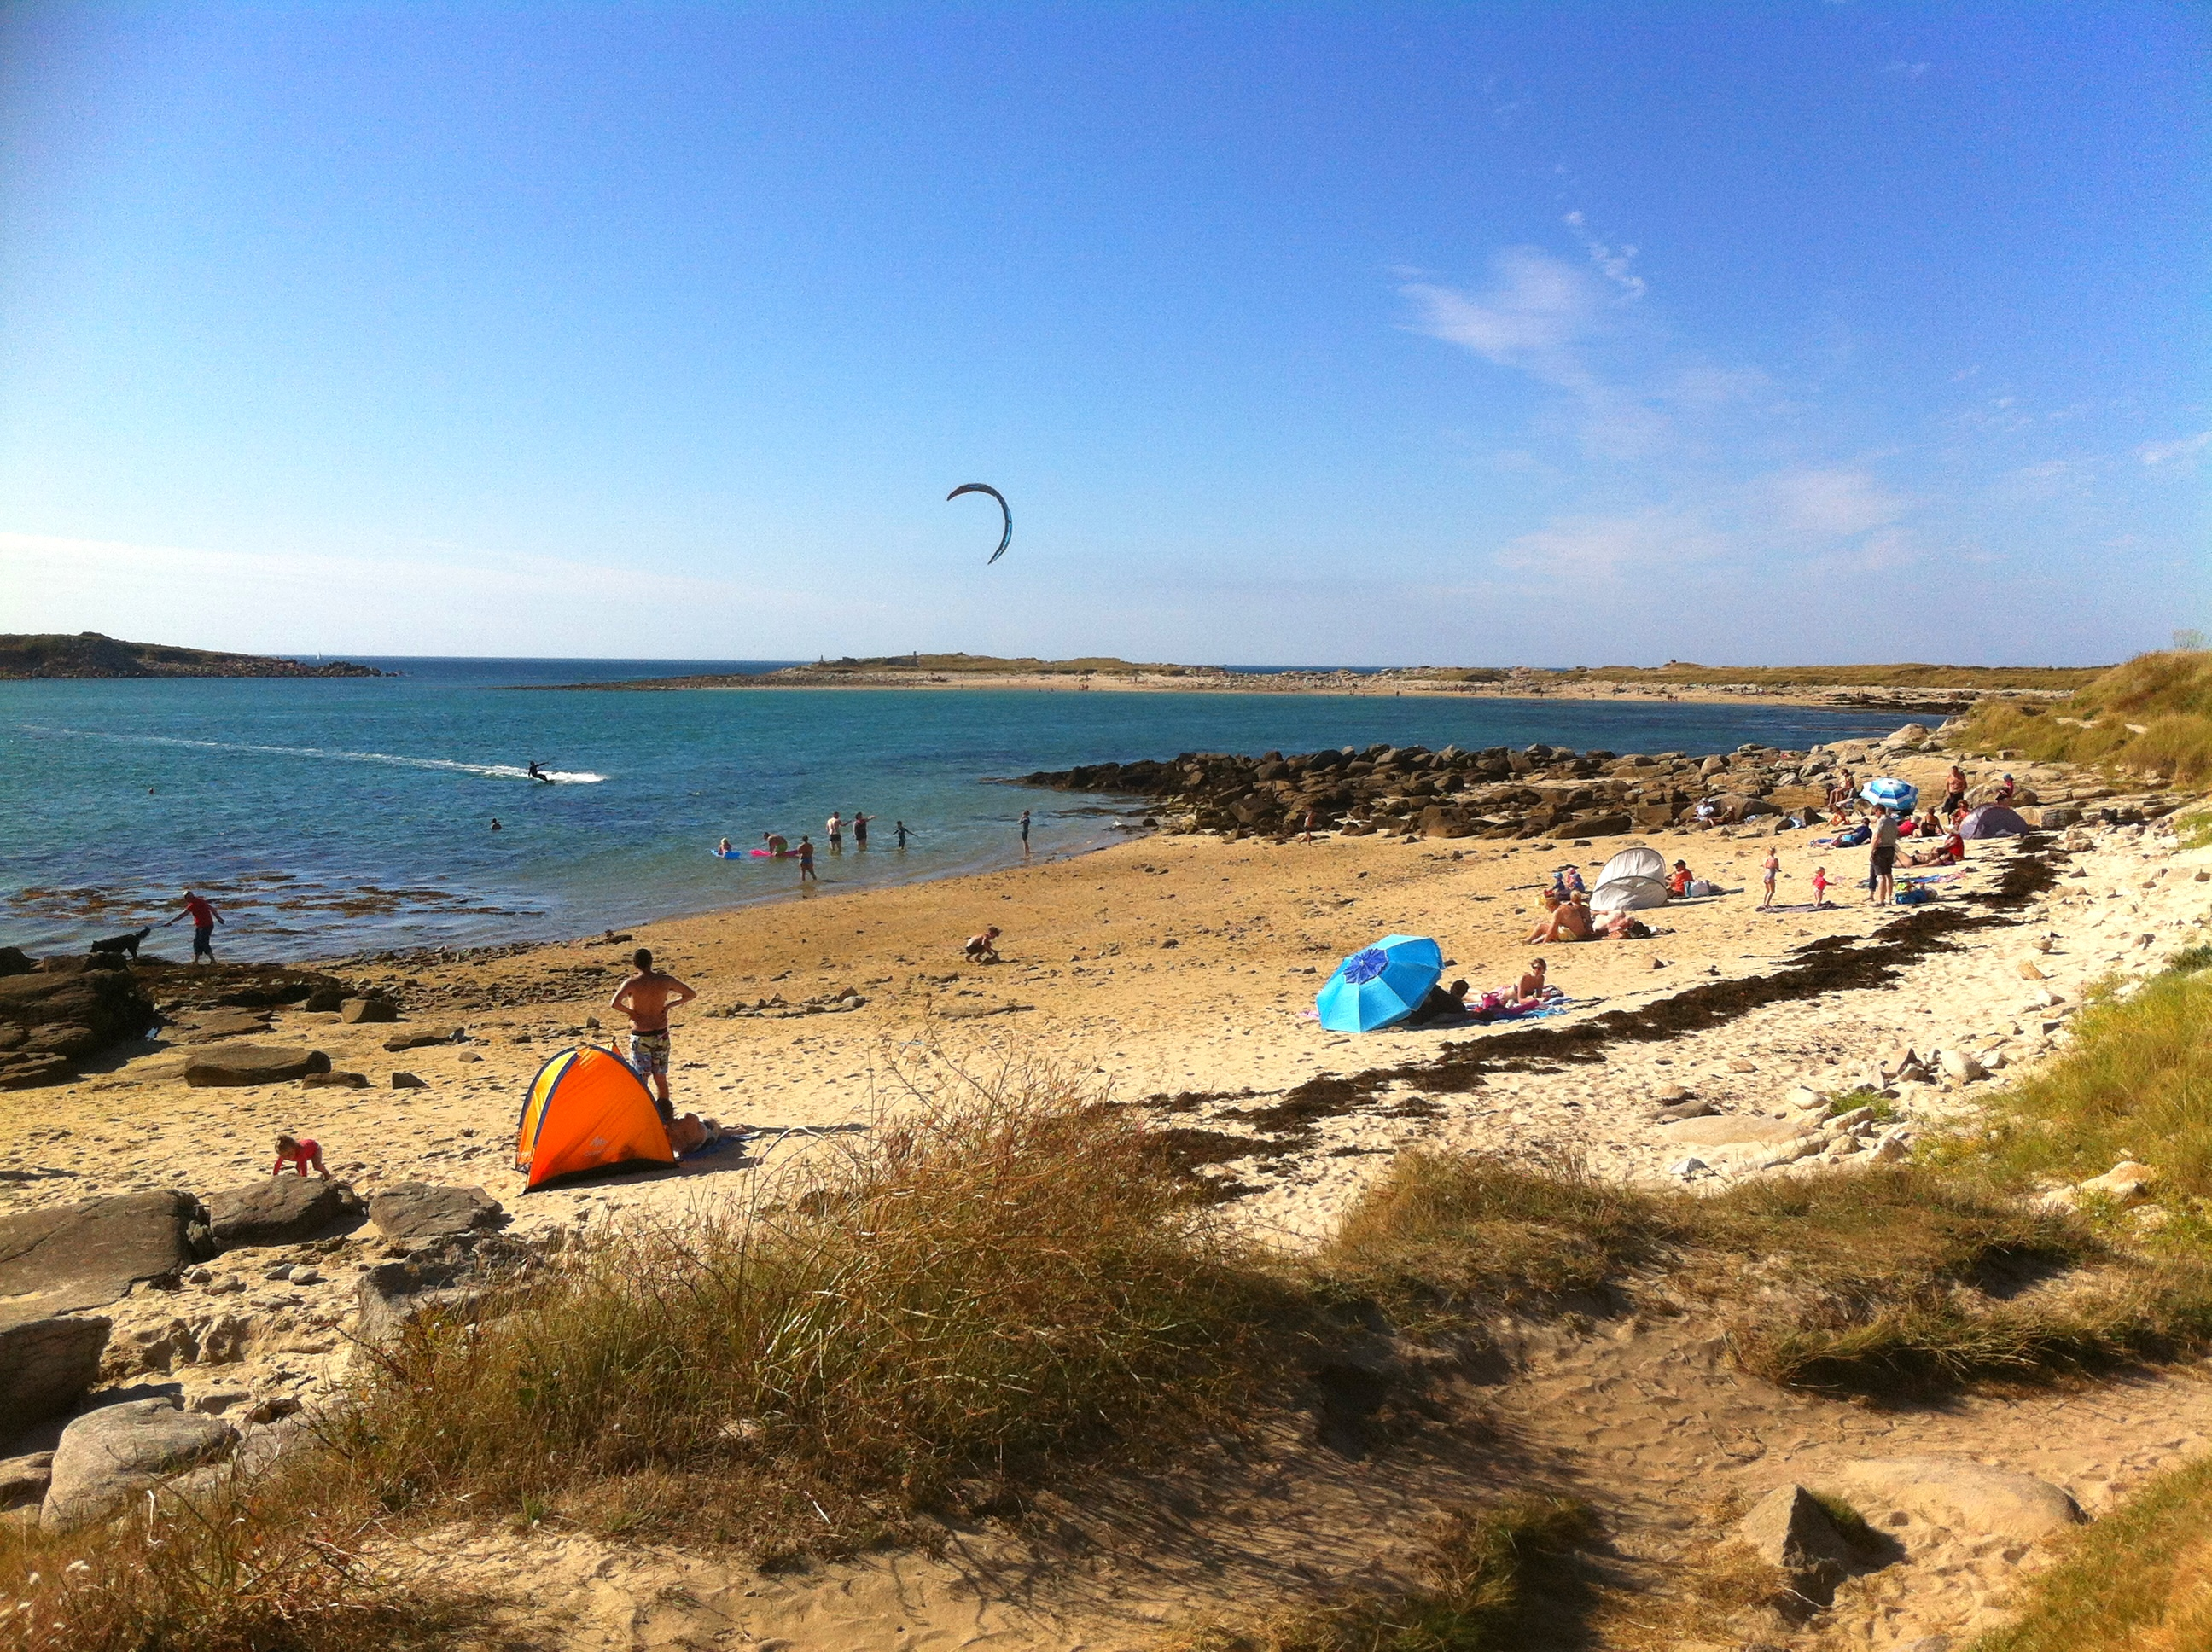 Pleumeur-Bodou-Ile-Grande-dourlin-camping 2019-2#http://cdt22.media.tourinsoft.eu/upload/Pleumeur-Bodou-camping-municipal-Ile-Grande-2014-07-photo07.JPG